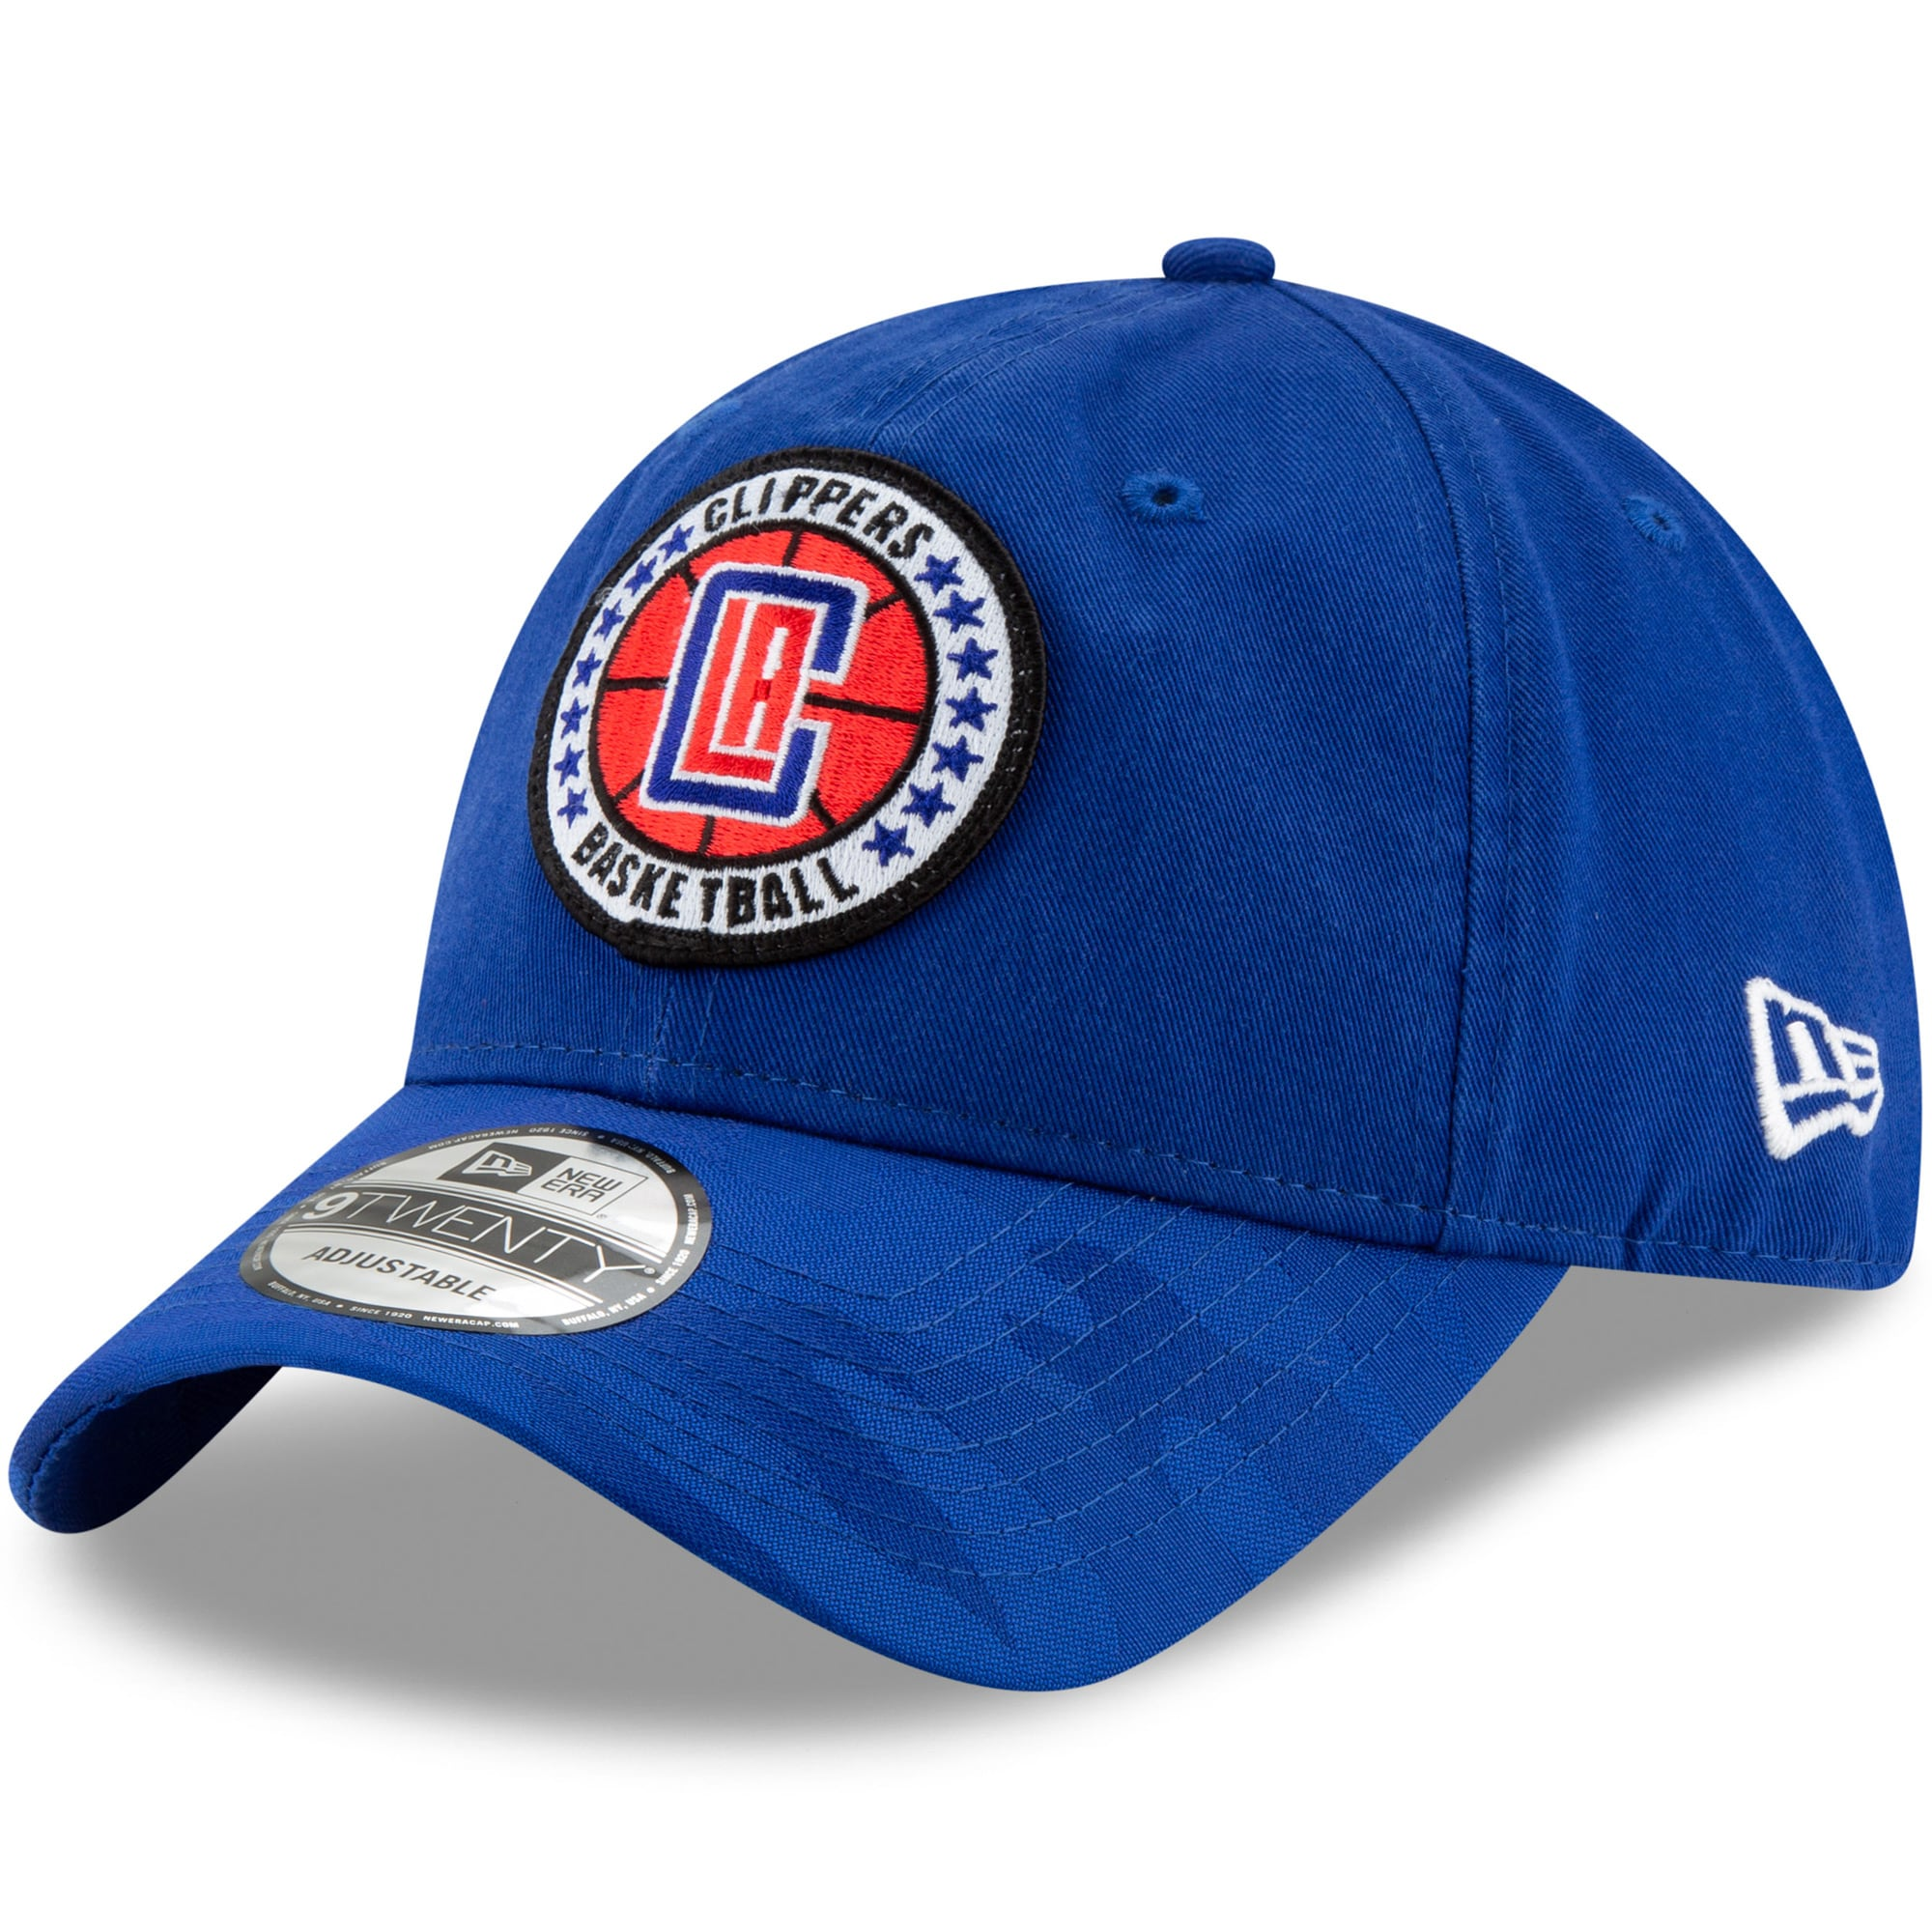 LA Clippers New Era 2018 Tip-Off Series 9TWENTY Adjustable Hat - Royal